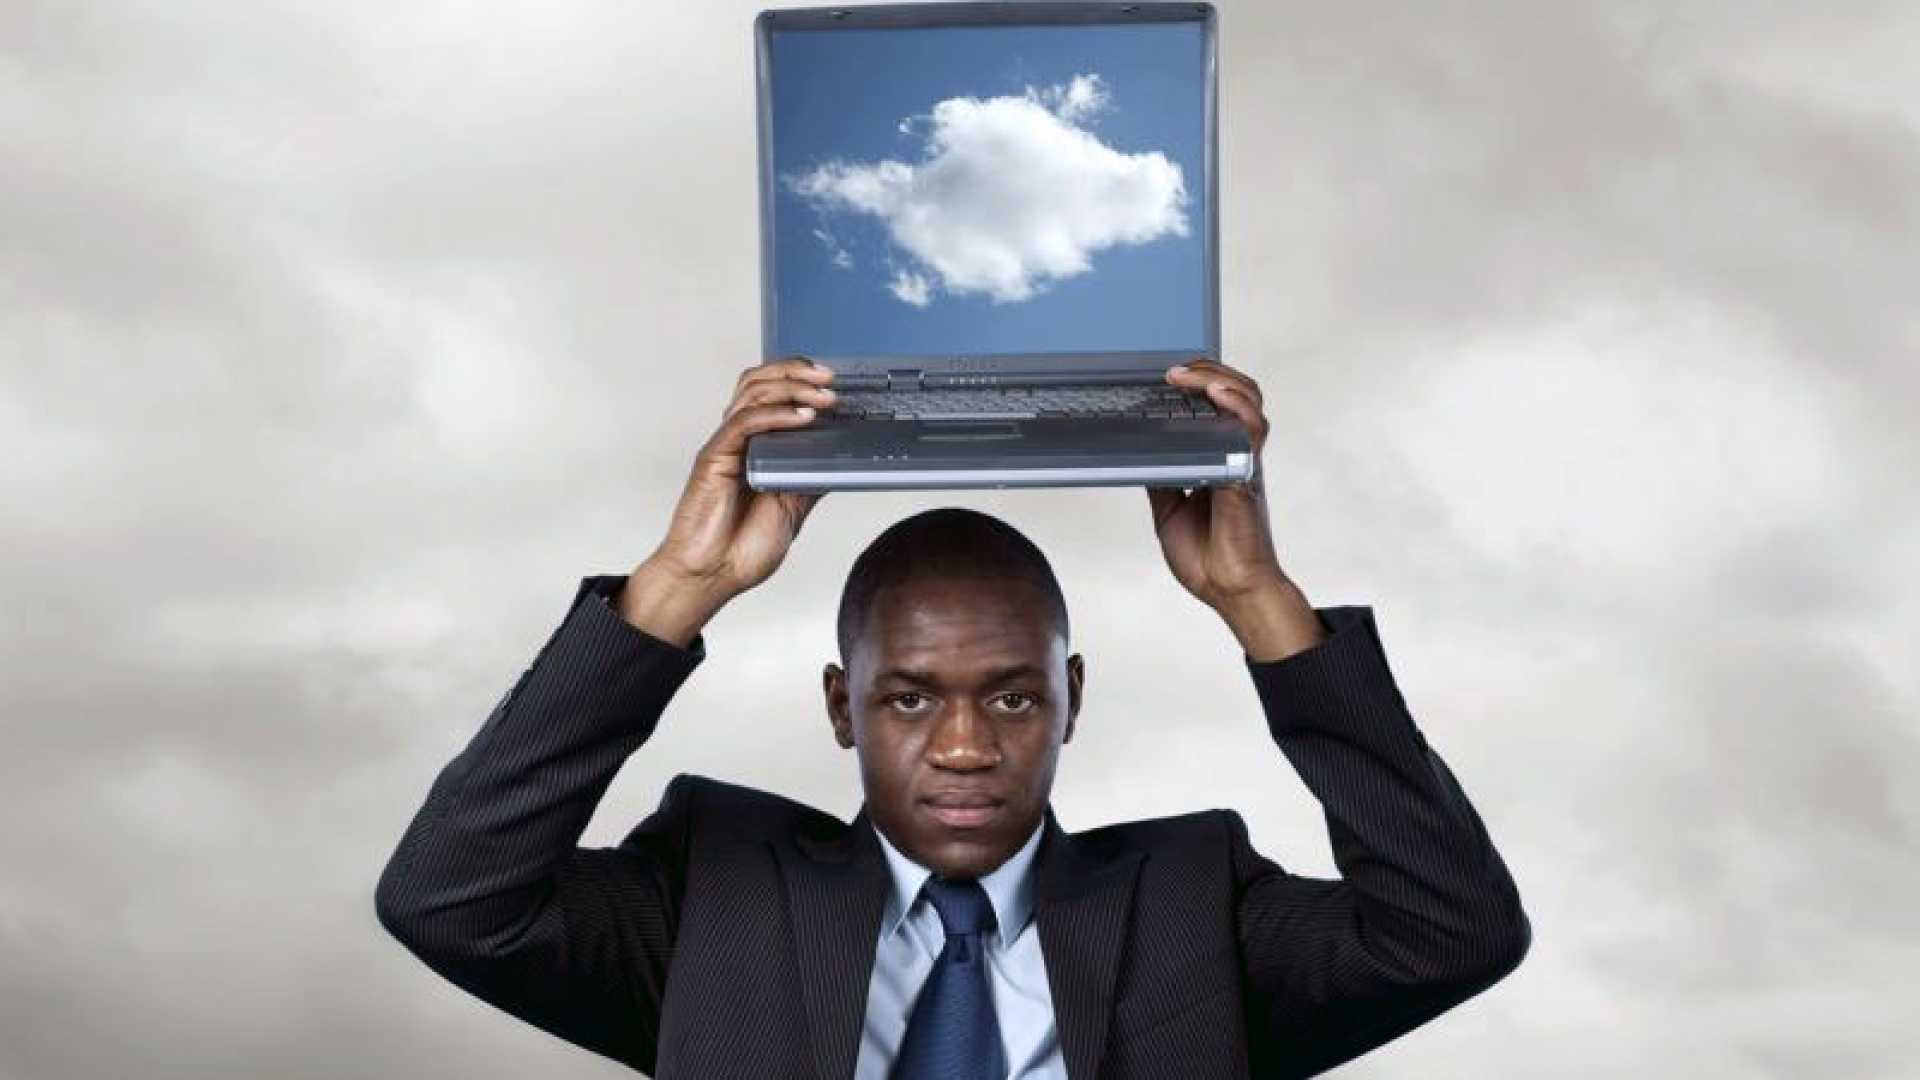 CIOs Must Adjust to a Cloud-based World